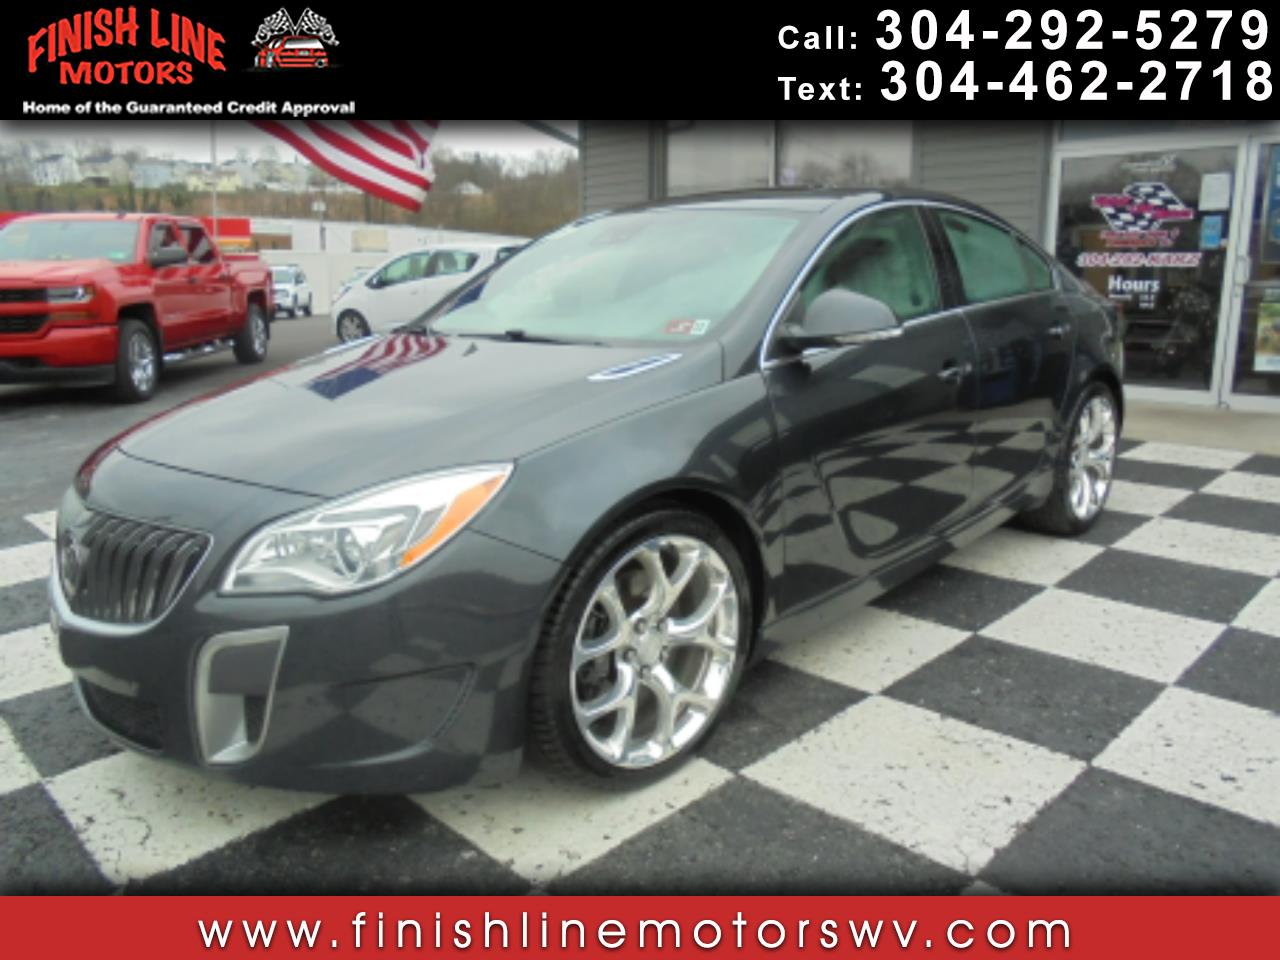 Buick Regal 4dr Sdn GS AWD 2014